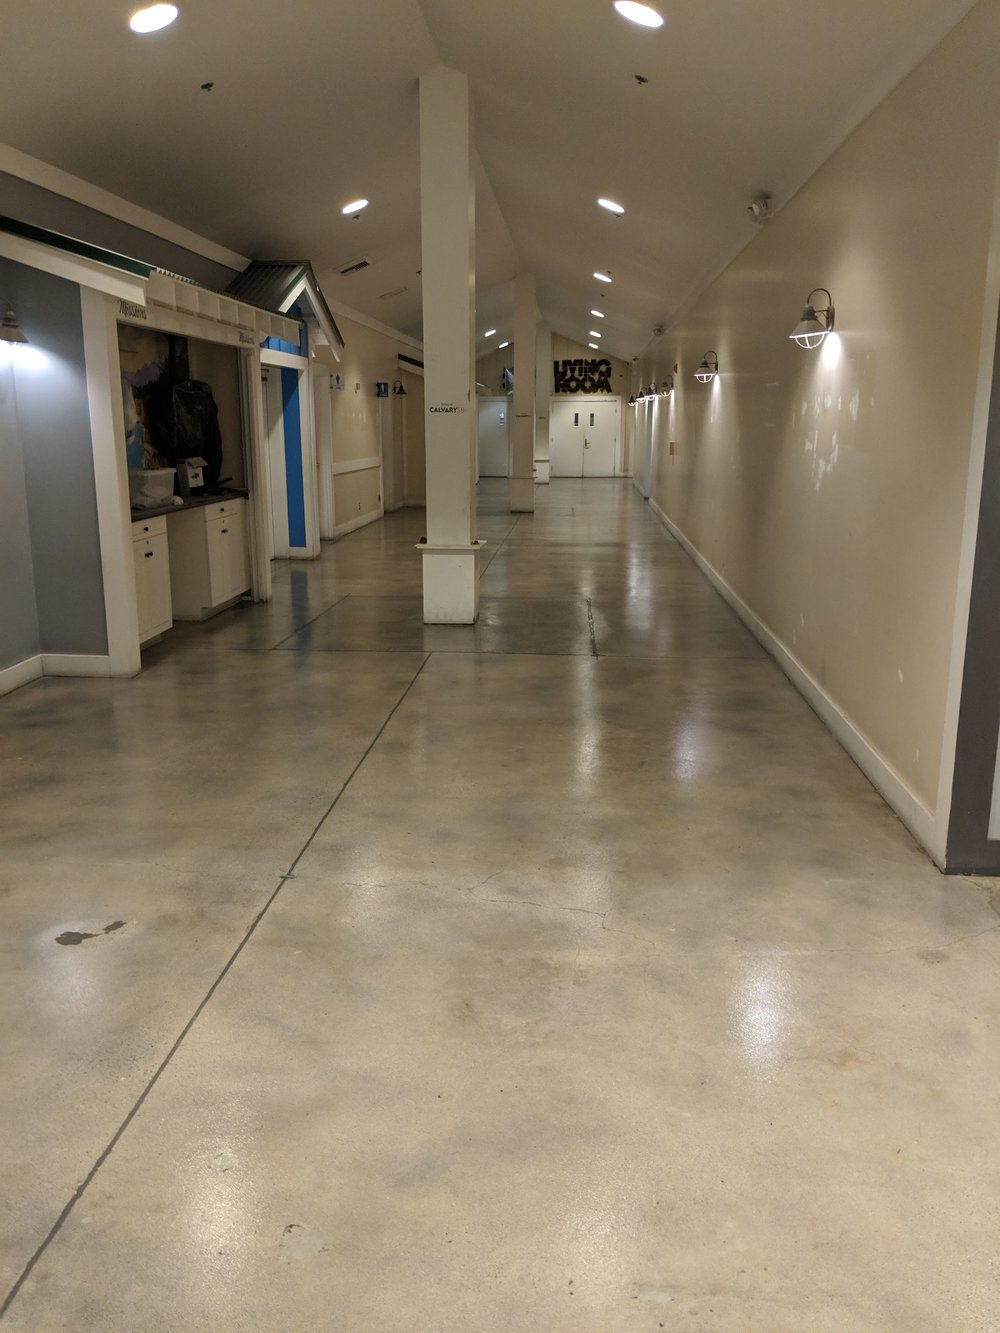 Check out these amazing floors! Ground down to perfection, stained grey to camouflage the cracks and different concrete patches, then sealed with an anti-slip clear coat. By now, these hallways have been painted by our wonderful volunteers! You won't recognize it when we're done…